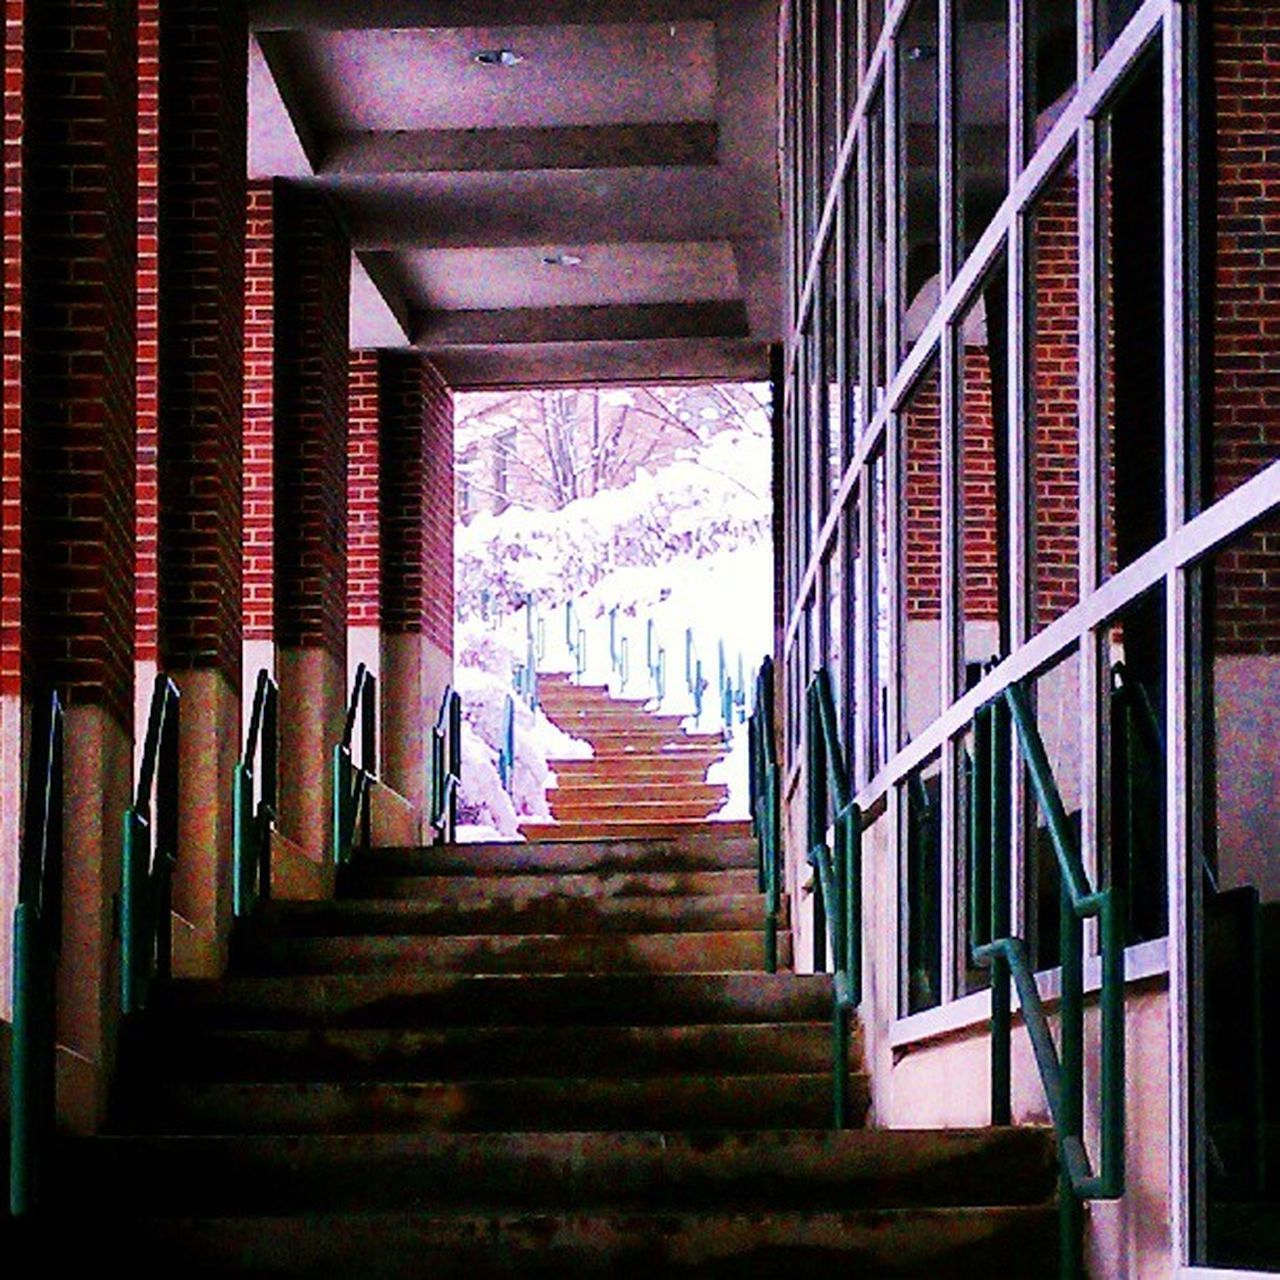 staircase, steps and staircases, steps, in a row, railing, stairs, architecture, indoors, spiral, built structure, no people, day, hand rail